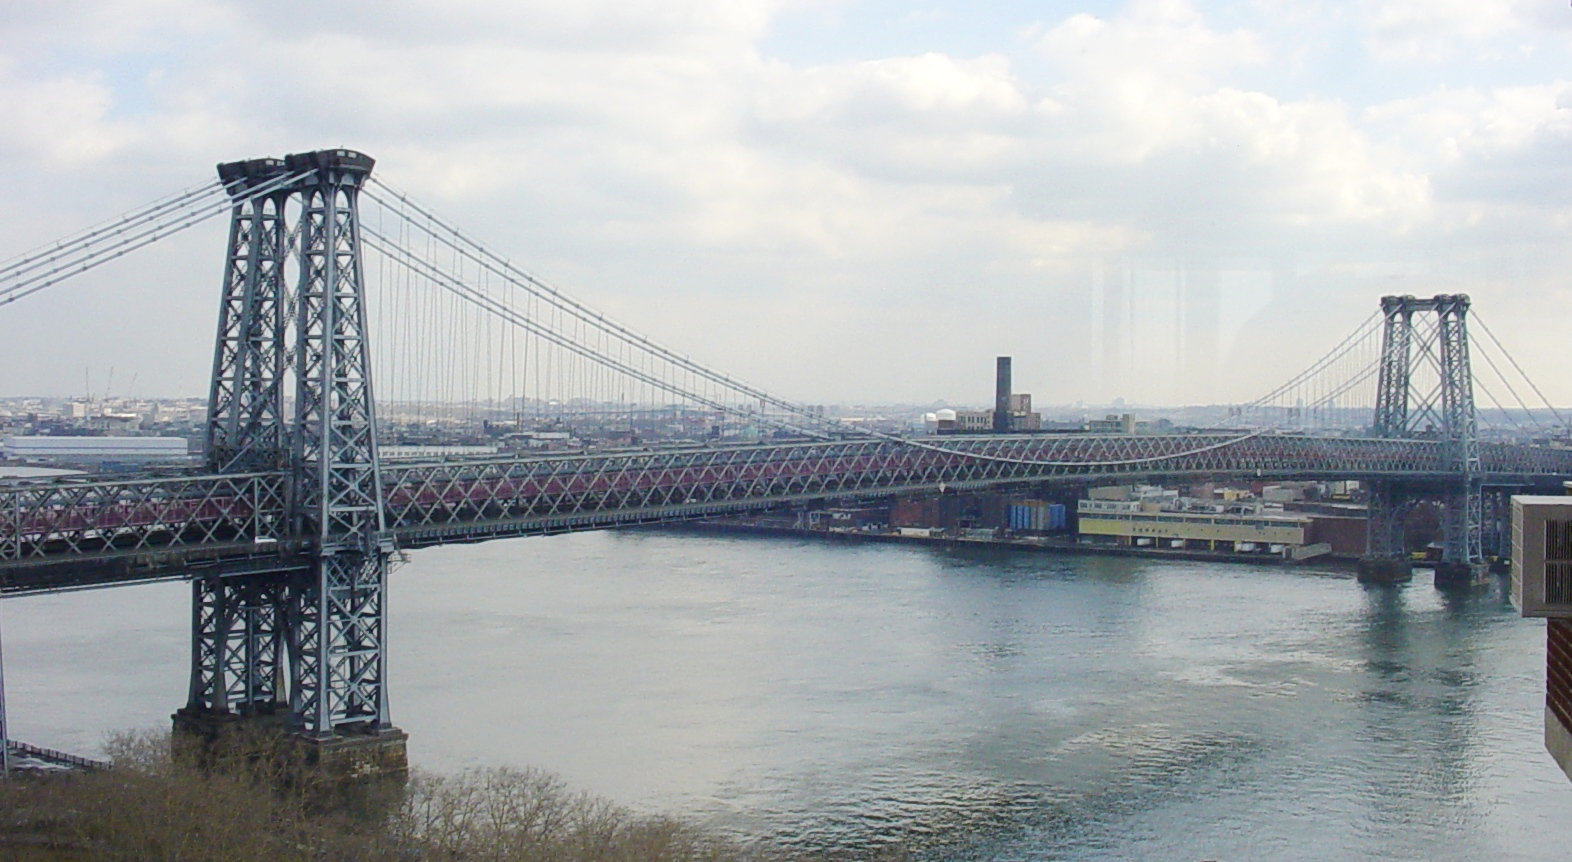 an overview of the suspension bridge between the east river from brooklyn to manhattan island Facts overview suspension bridge over east river between manhattan and brooklyn in new york location brooklyn, kings county, new york, and new york county, new york.